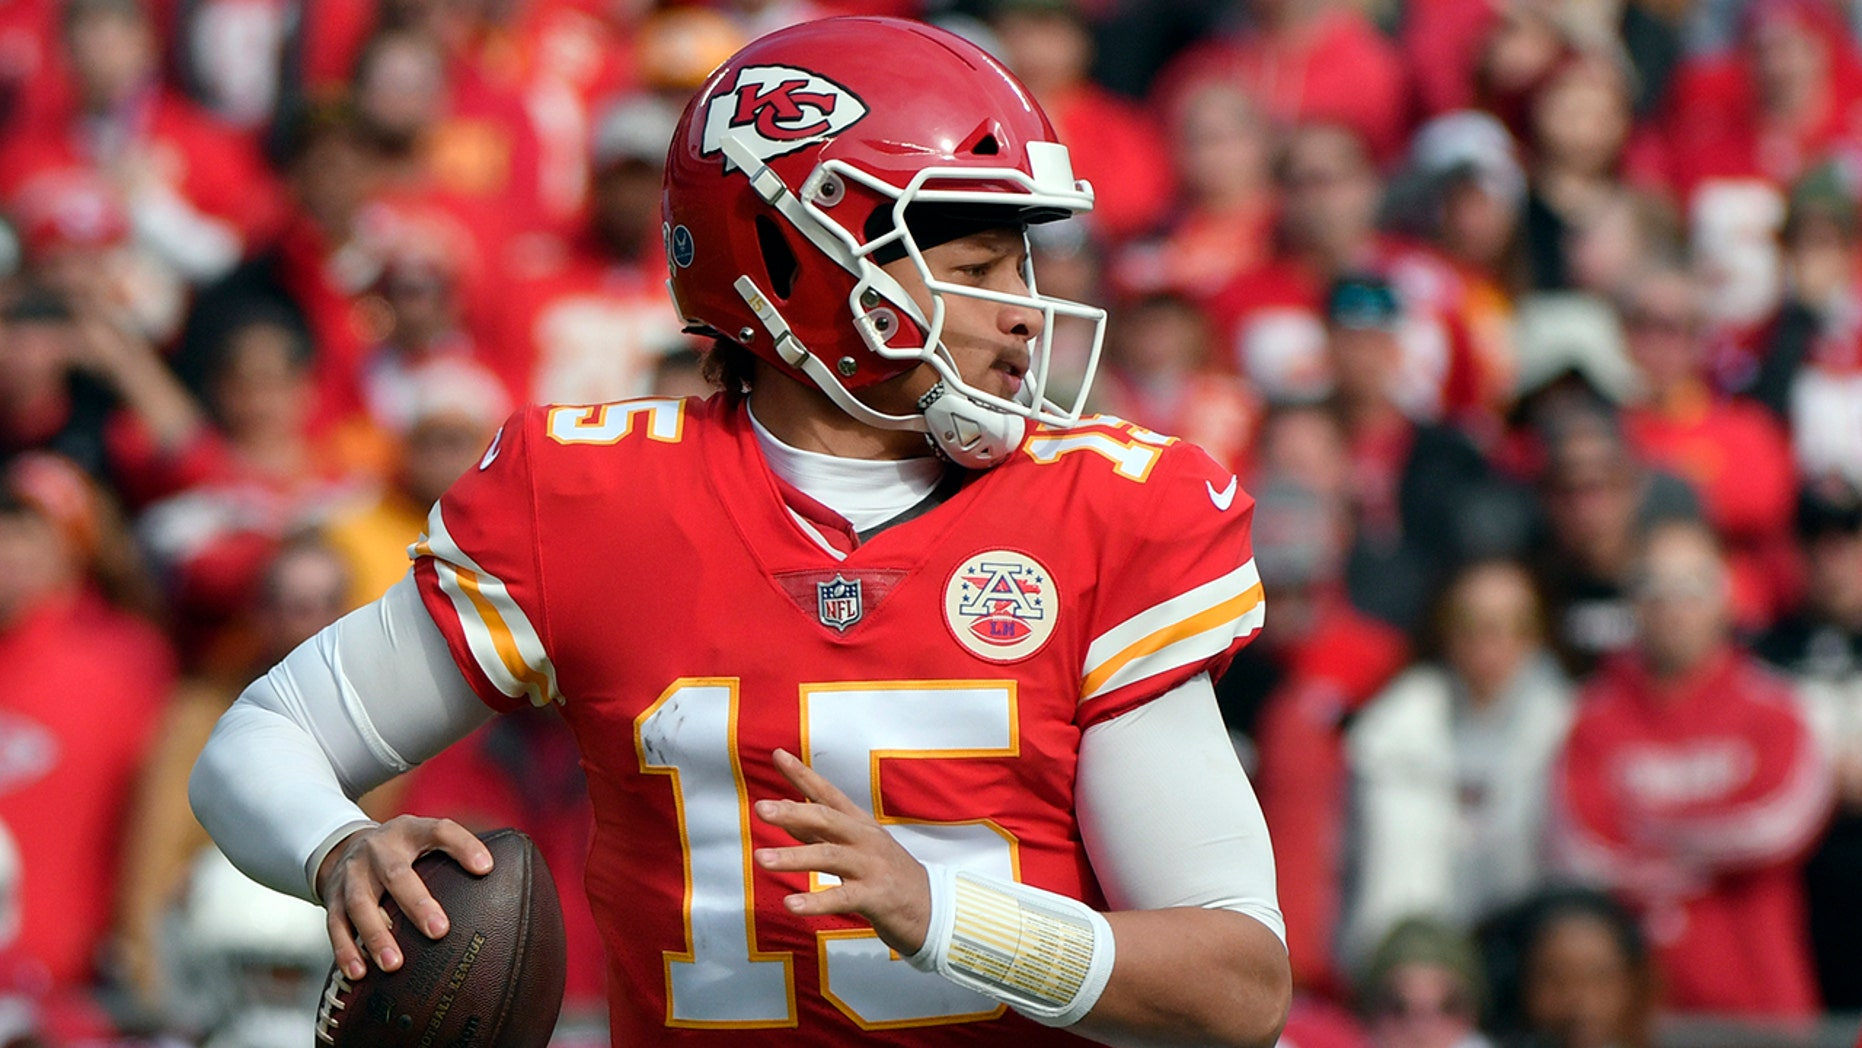 Kansas City Chiefs quarterback Patrick Mahomes was forced to miss postgame interviews after his girlfriend's stepfather suffered a medical emergency and later died.